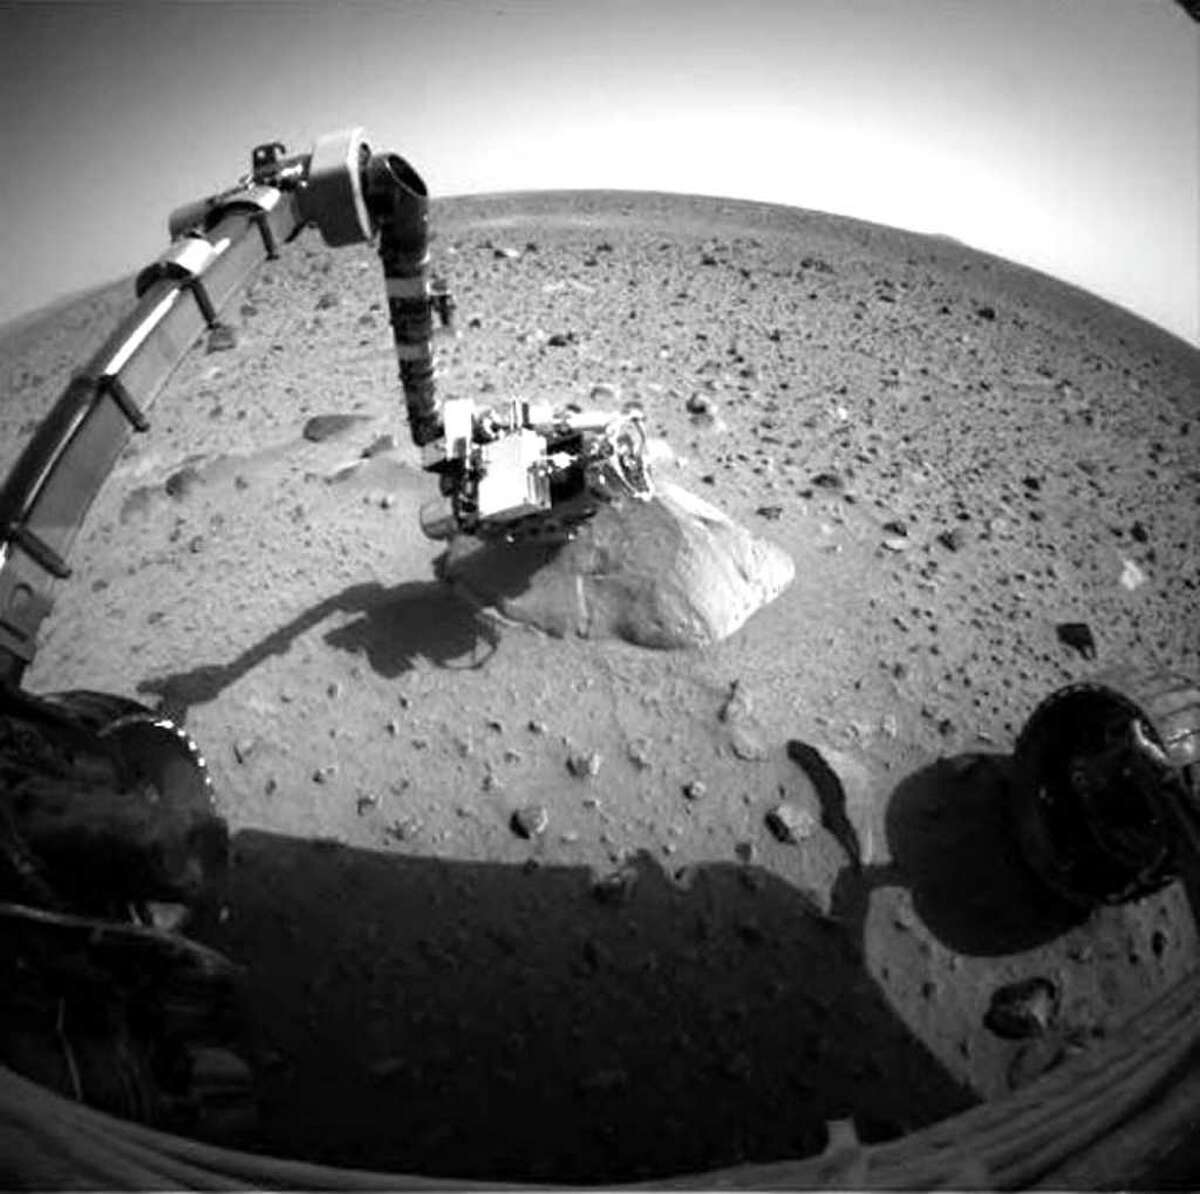 NASA's Mars Exploration Rover Spirit in 2004. The mysteries of Mars are likely to remain mysteries as funding is being canceled.